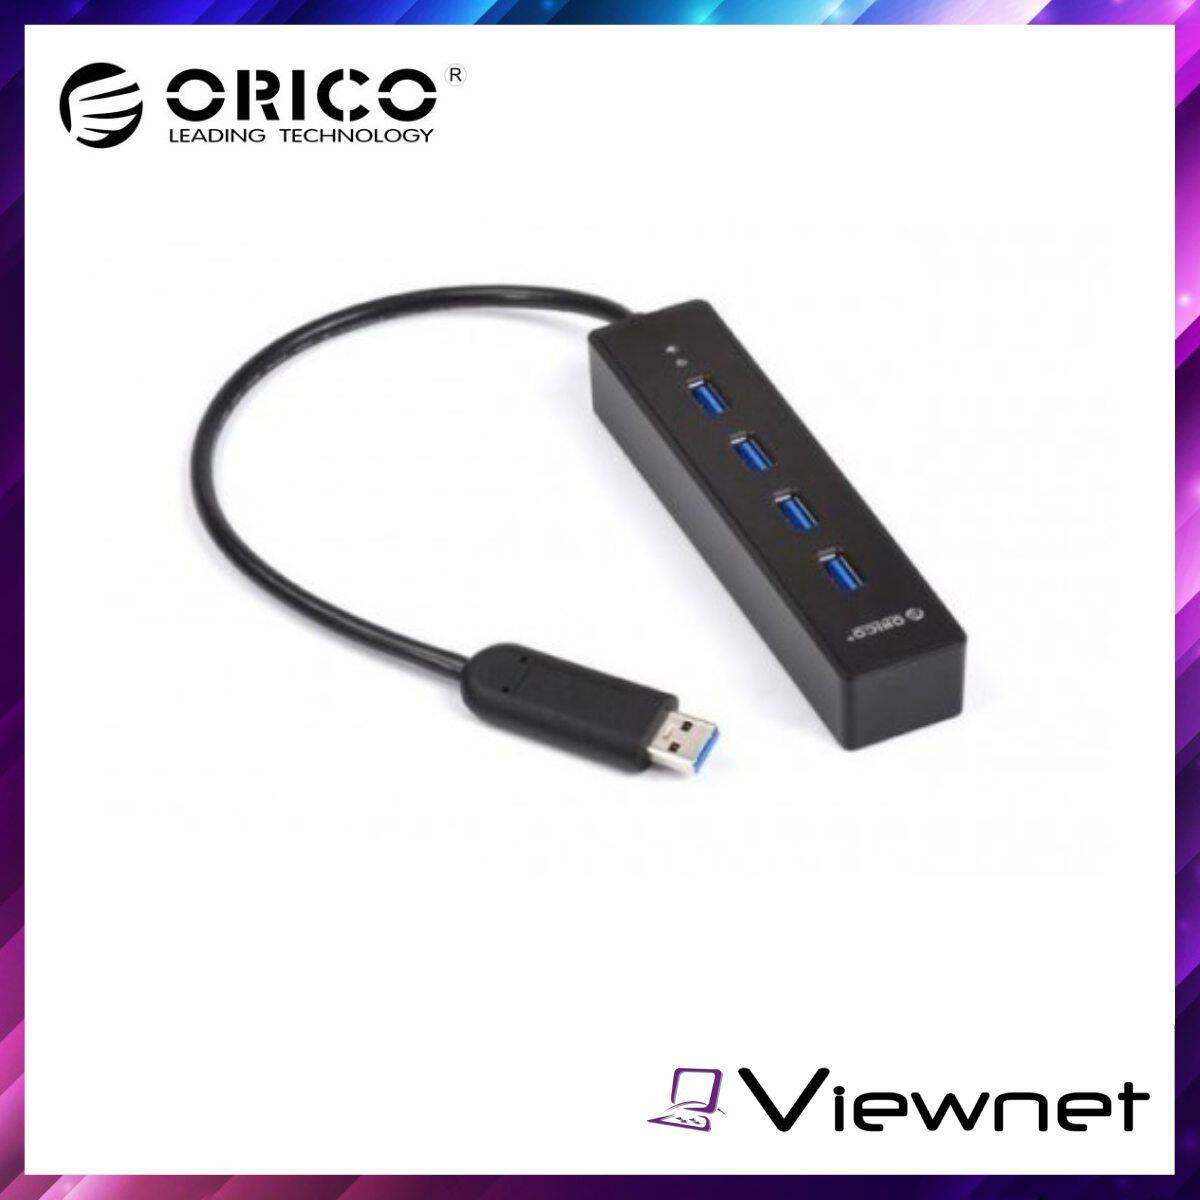 Orico 4-USB3.0 Ultra USB Hub (ORICO-W8PH4), Transfer Speeds up to 5Gbps, Easy installation, Advanced VL812 Controller